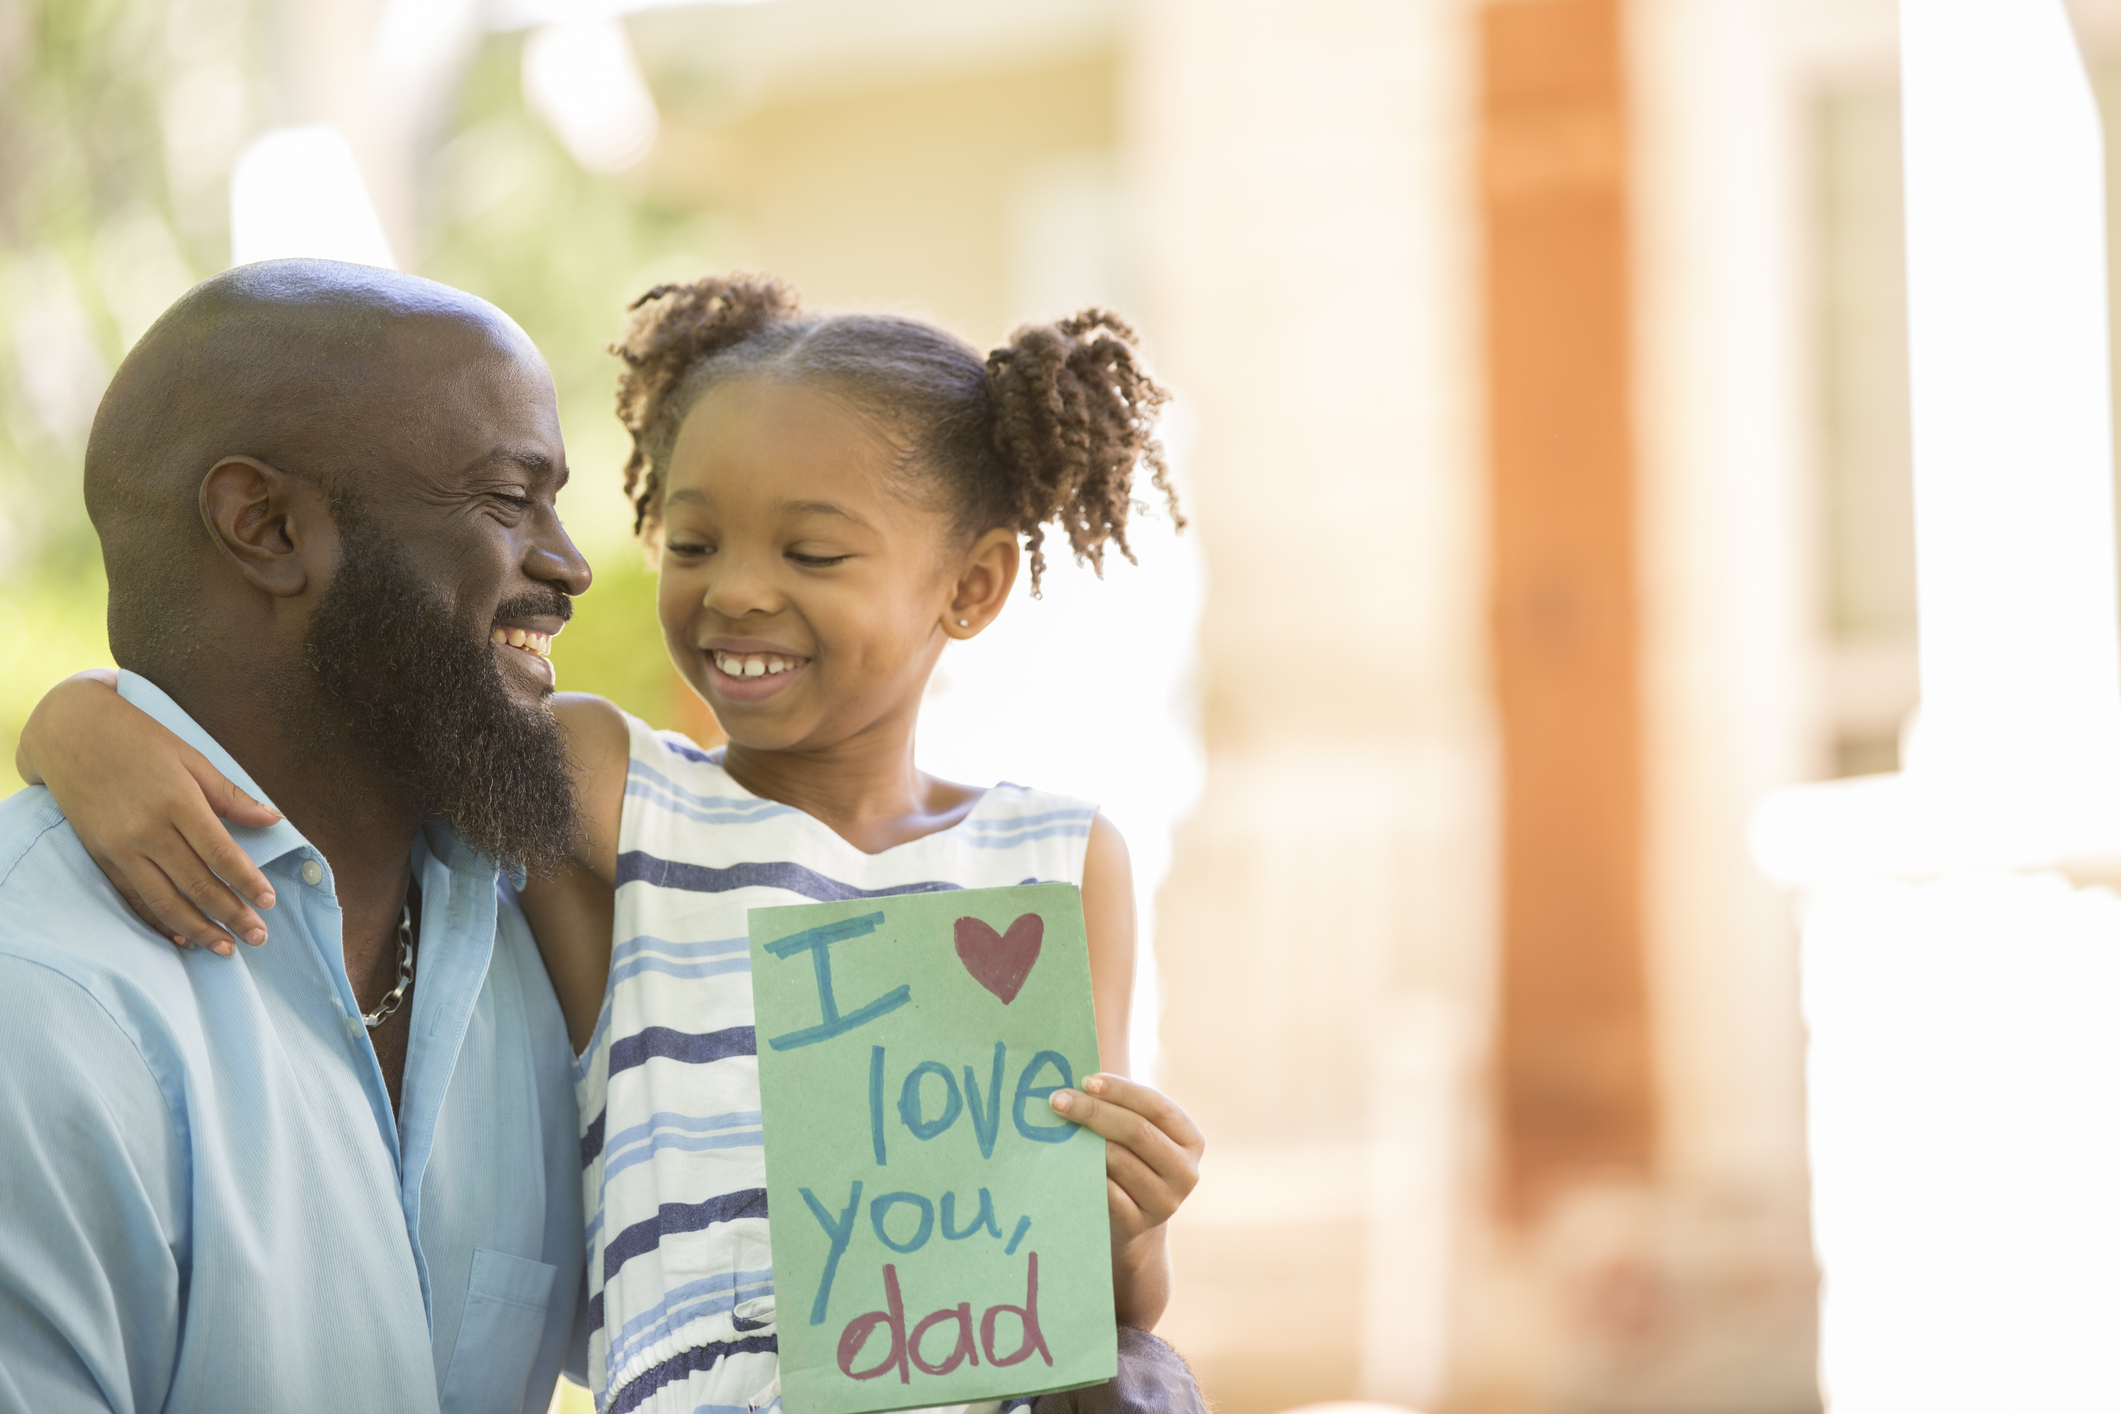 Teen Father Stock Photo - Download Image Now - iStock